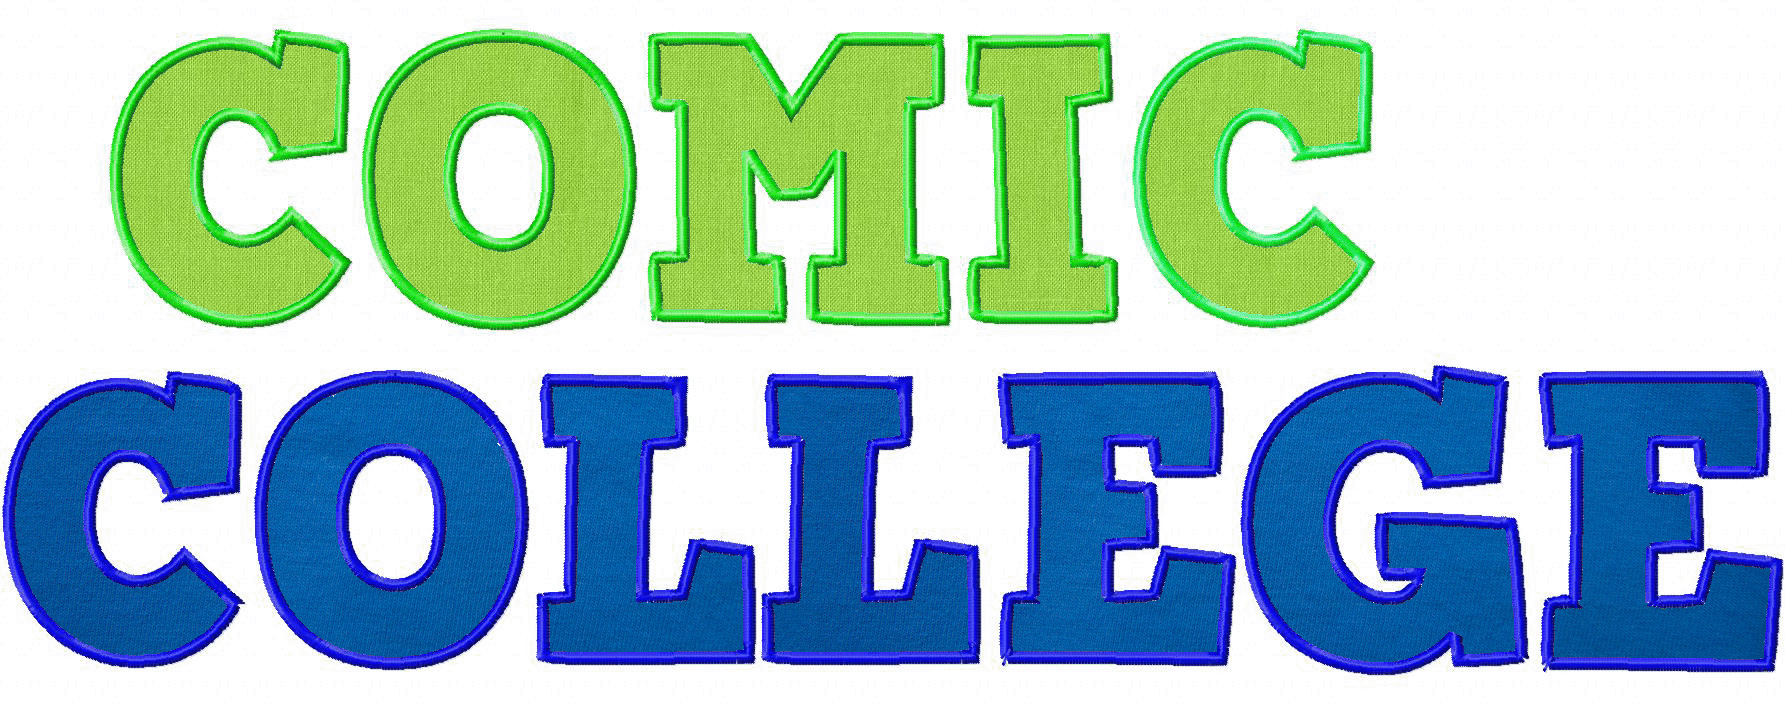 Comic College Applique Machine Embroidery Font Set in Three Sizes